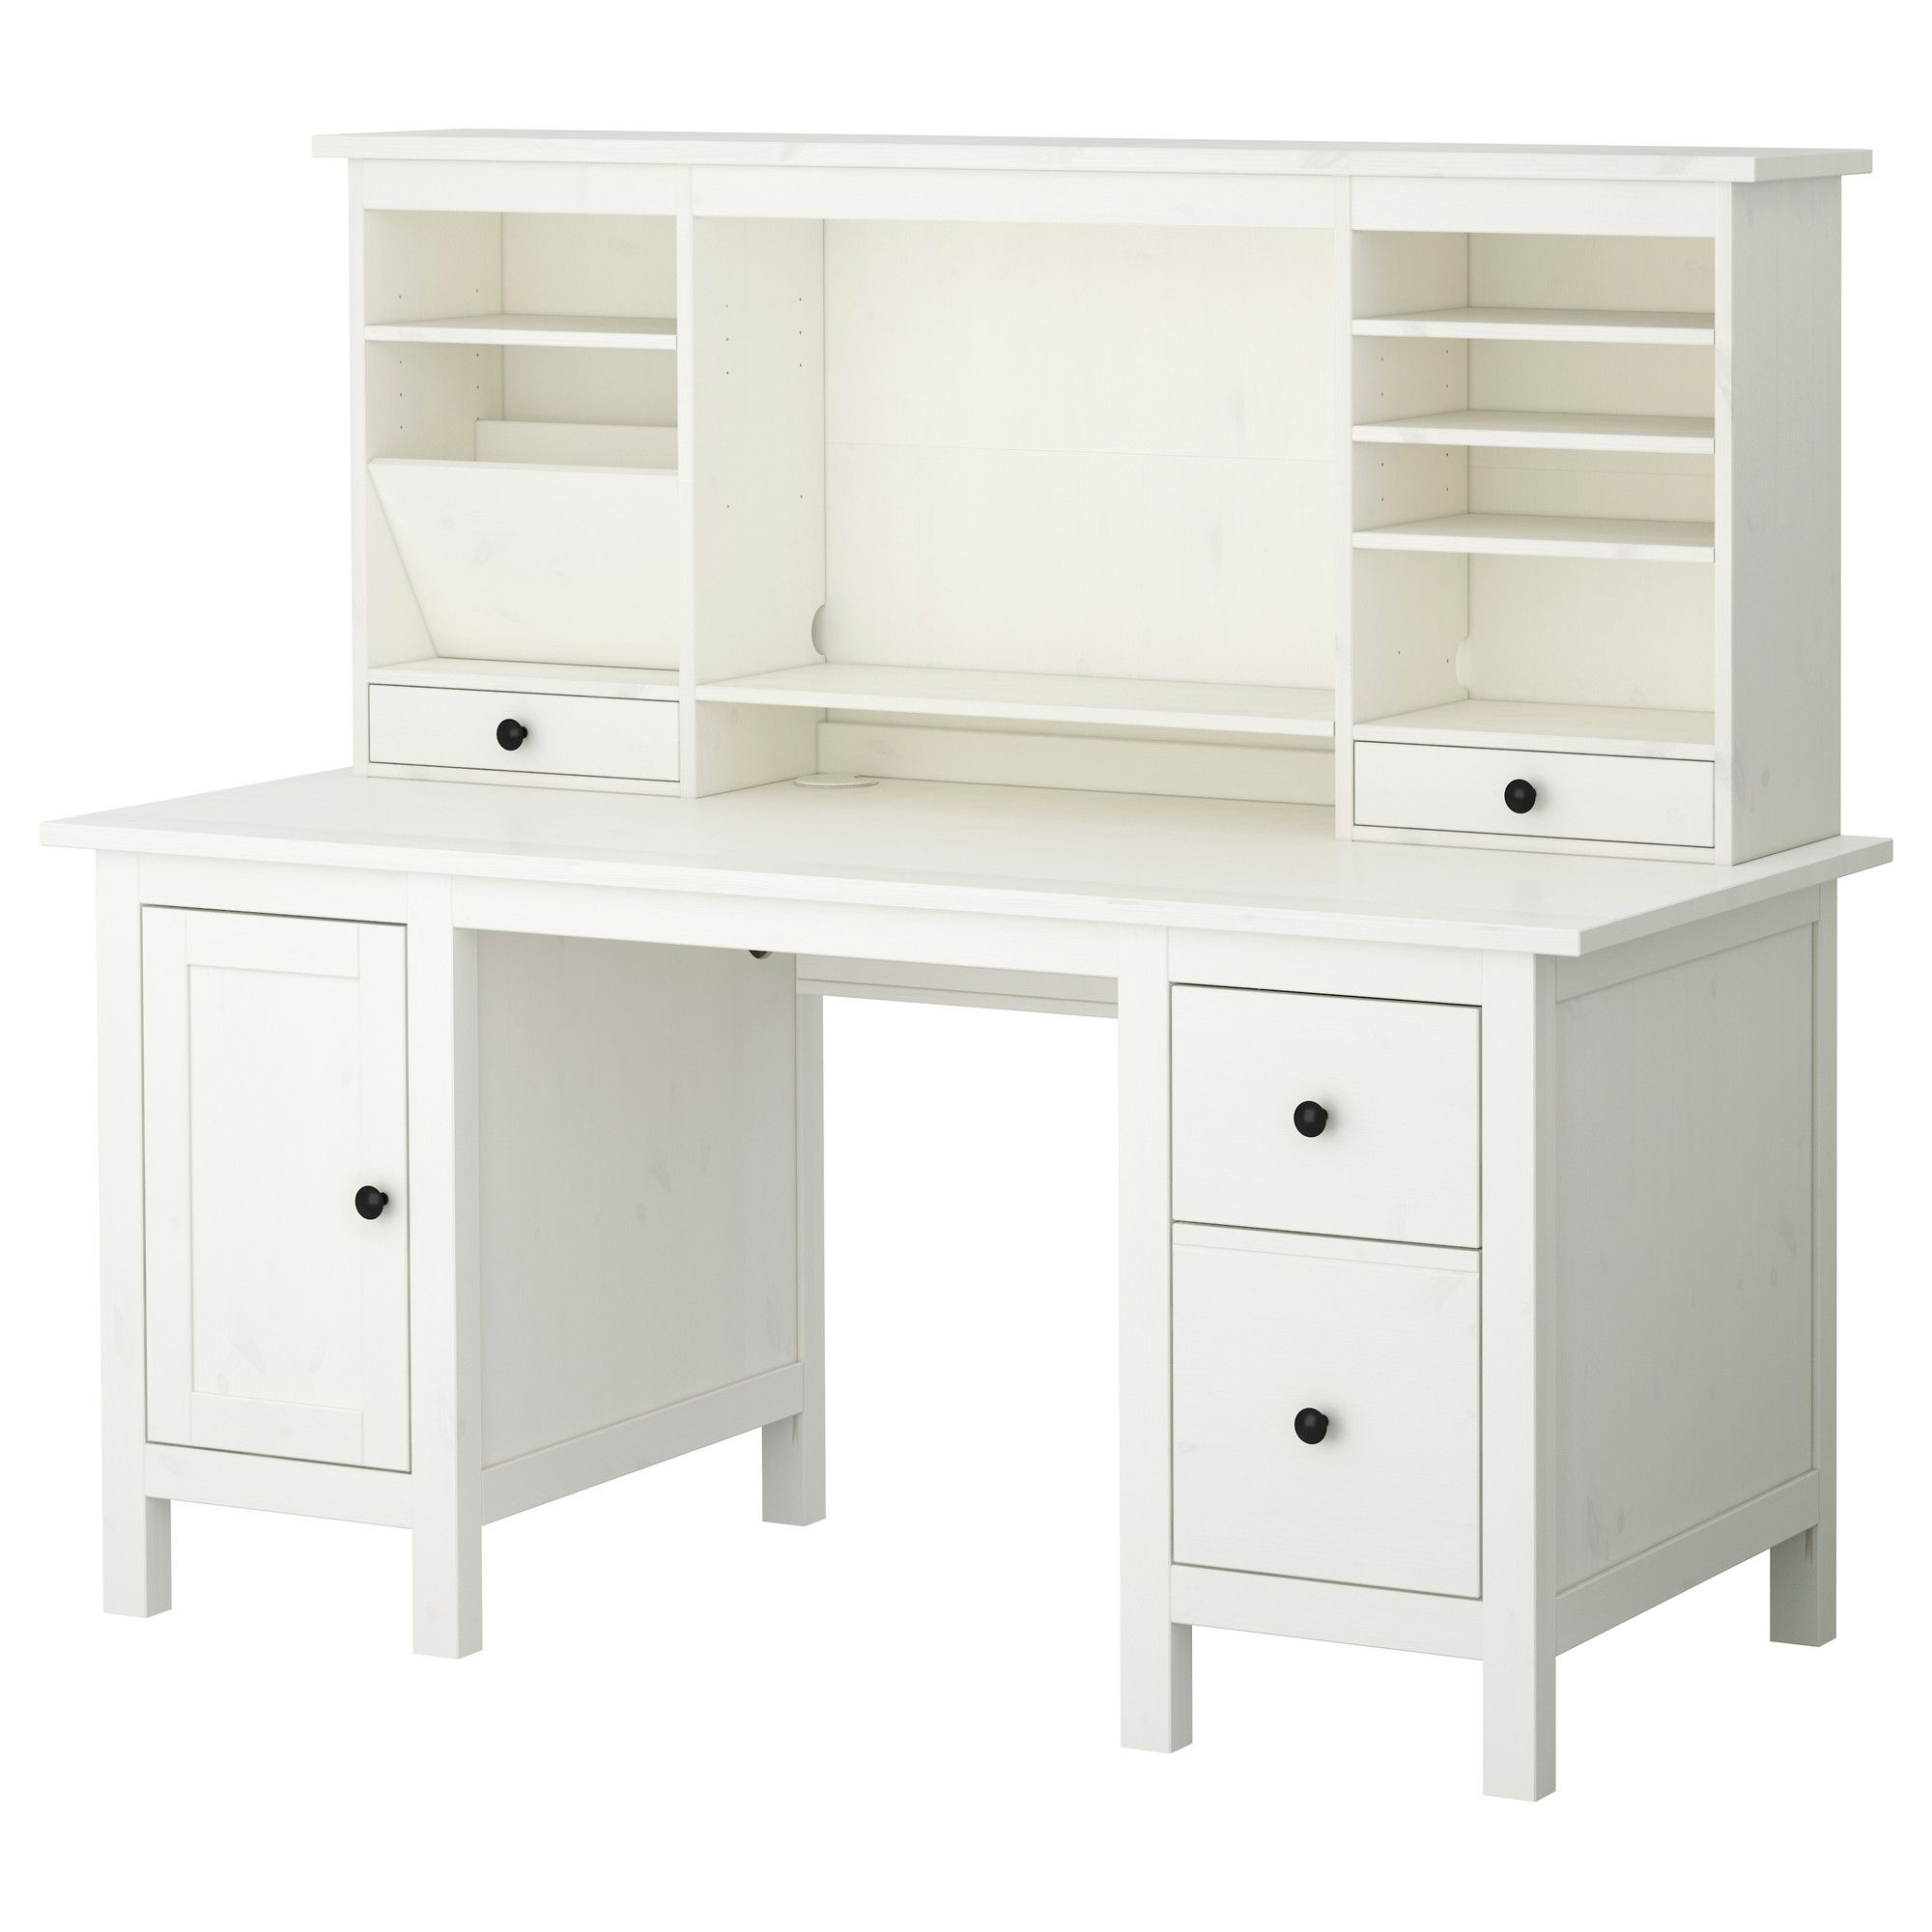 My Year Old Desk Is Falling Apart. IKEA   HEMNES, Desk With Add On Unit,  White Stain, , Part 91